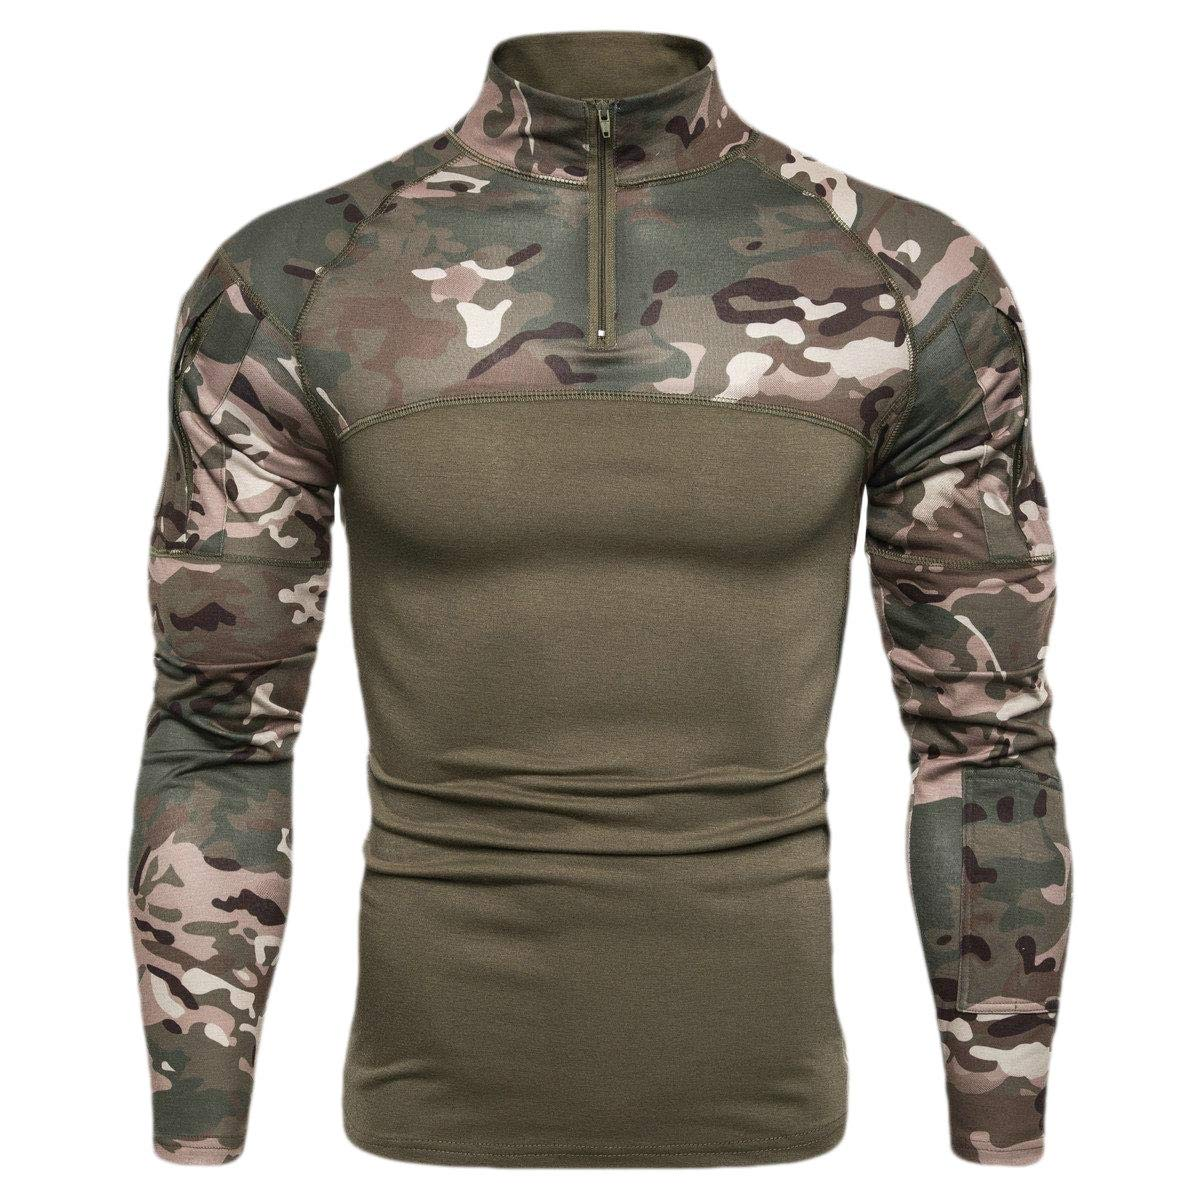 Domple Men Zip Up Stand Collar Camouflage Stylish Long Sleeve T-Shirt Tee